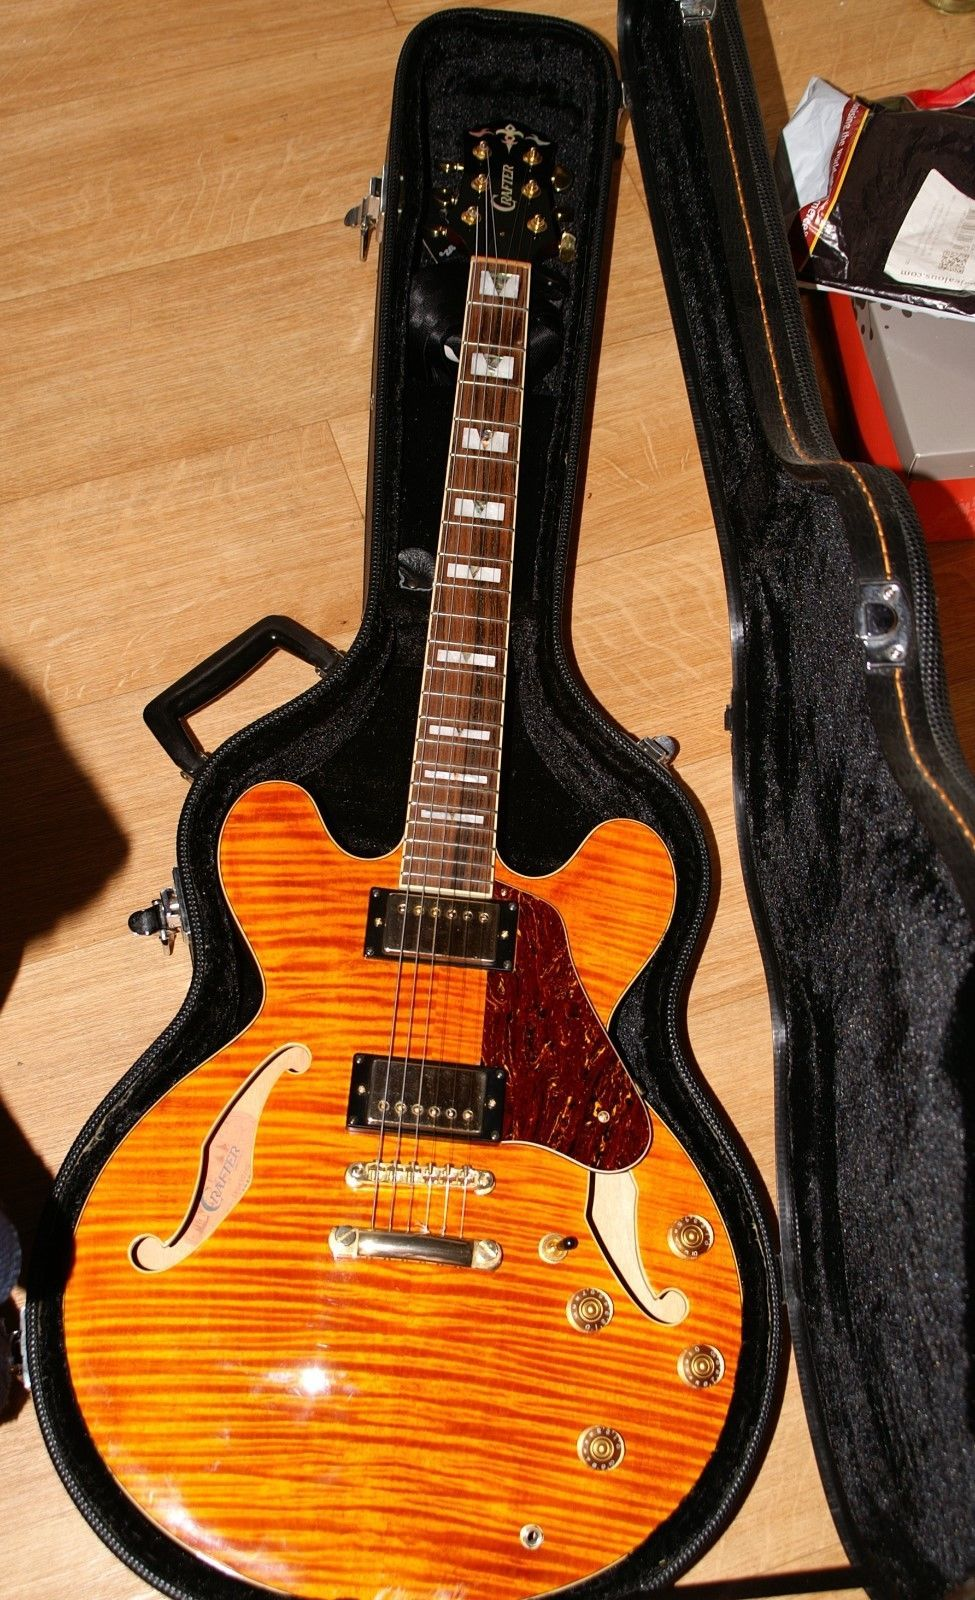 03a5a09ceb Crafter SEG450OR Semi Acoustic Guitar with hard case, 335, Epiphone ...